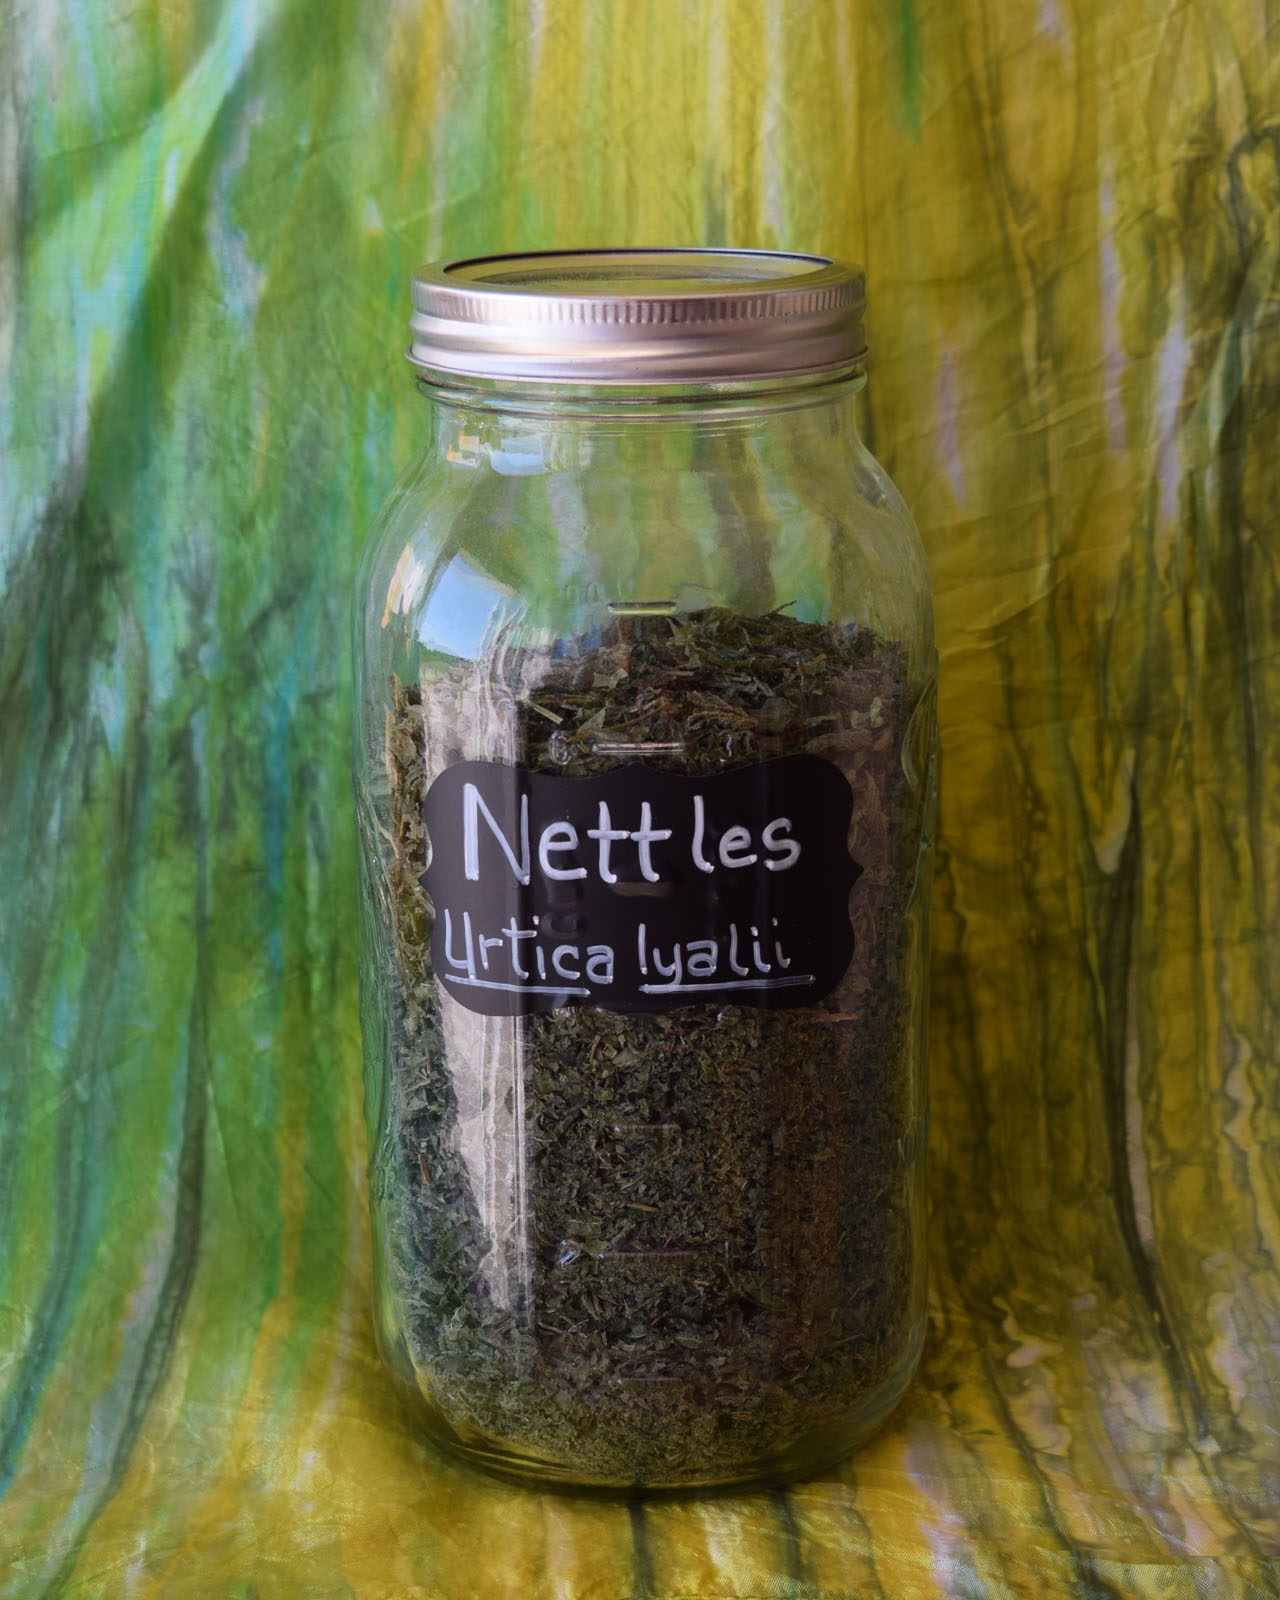 Nettle leaves*